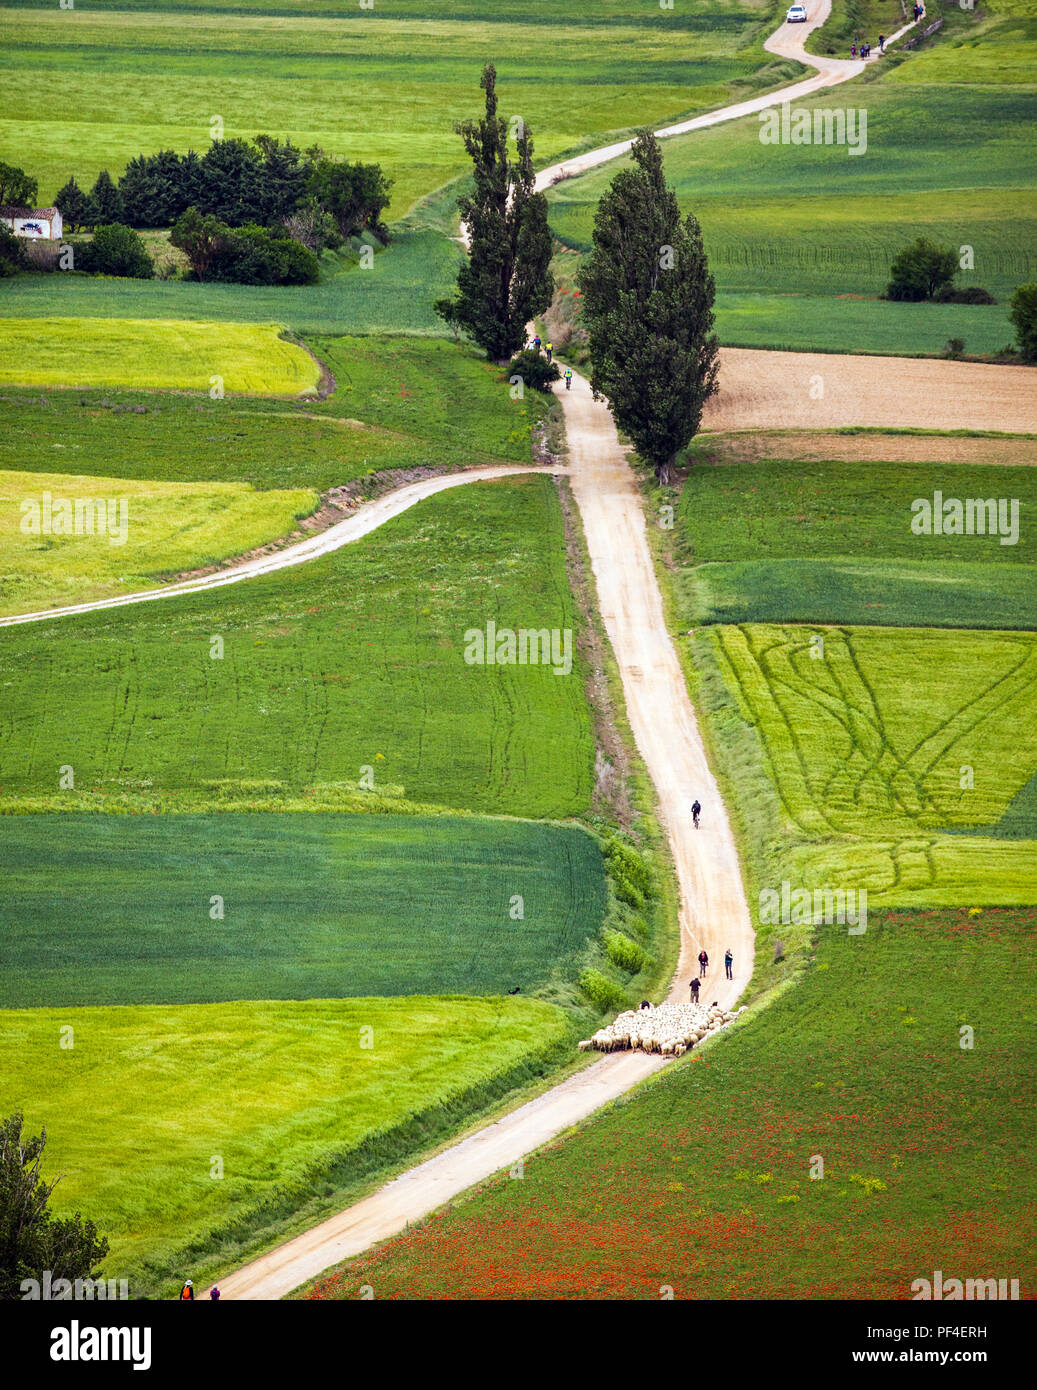 View of the route of the Camino de Santiago the way of St James as it leaves the town of Castrojeriz - Stock Image